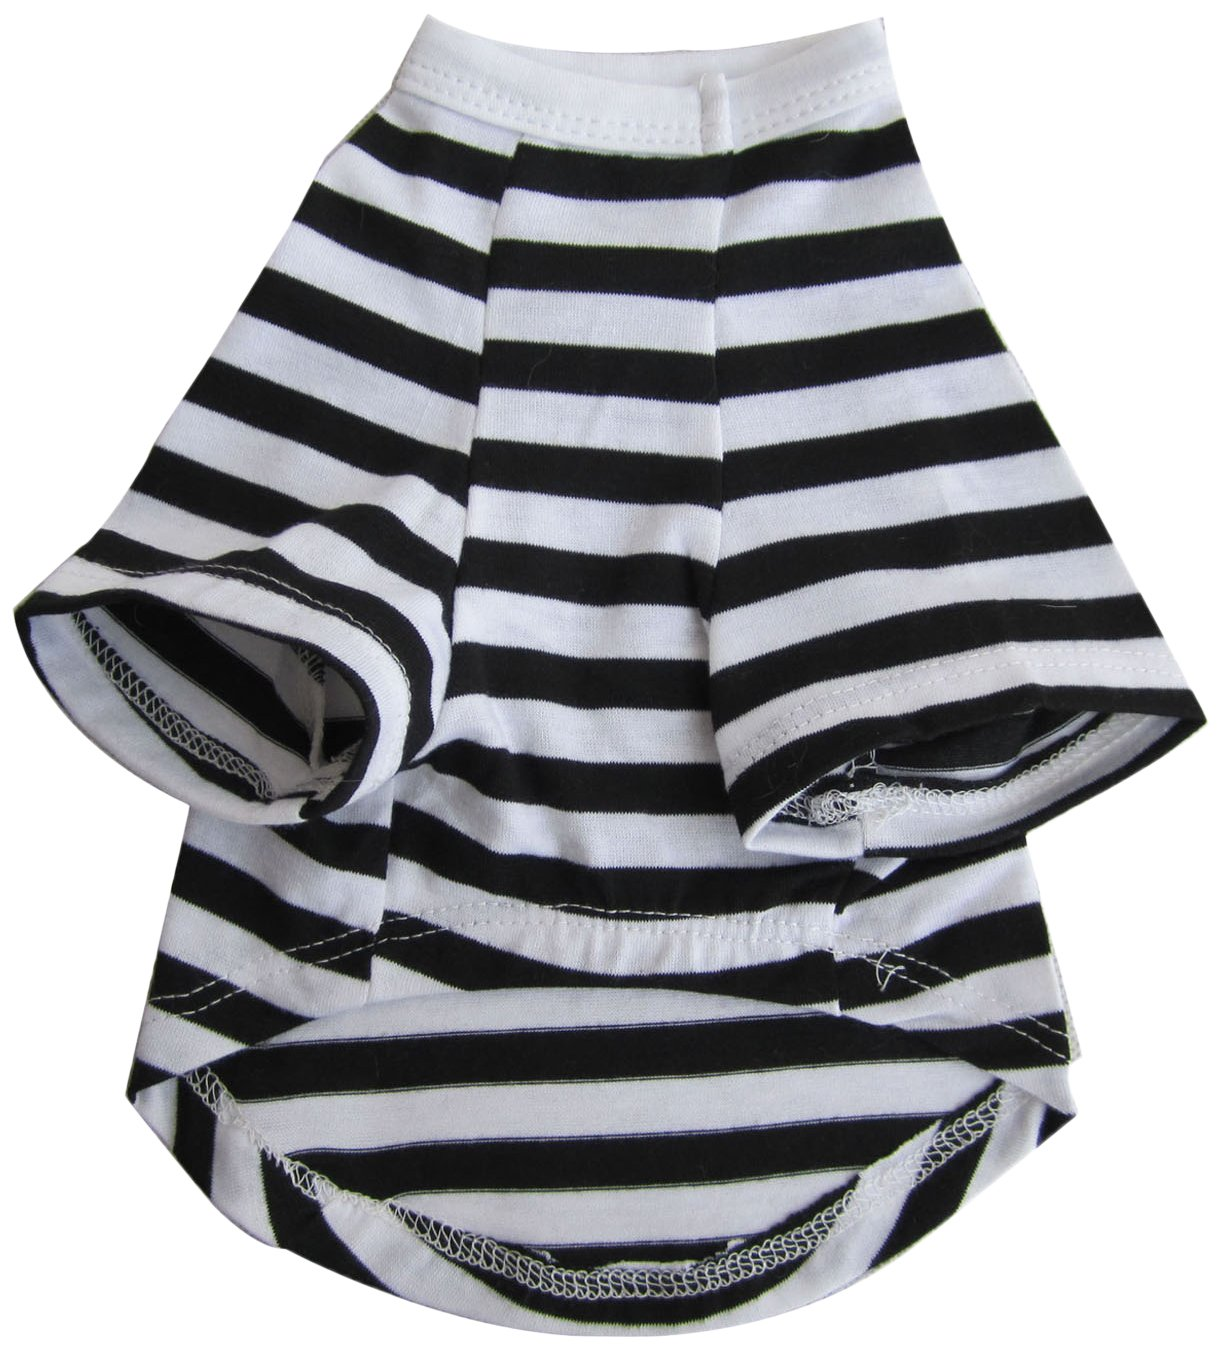 Iconic Pet Pretty Pet Striped Top, Small, Black and White